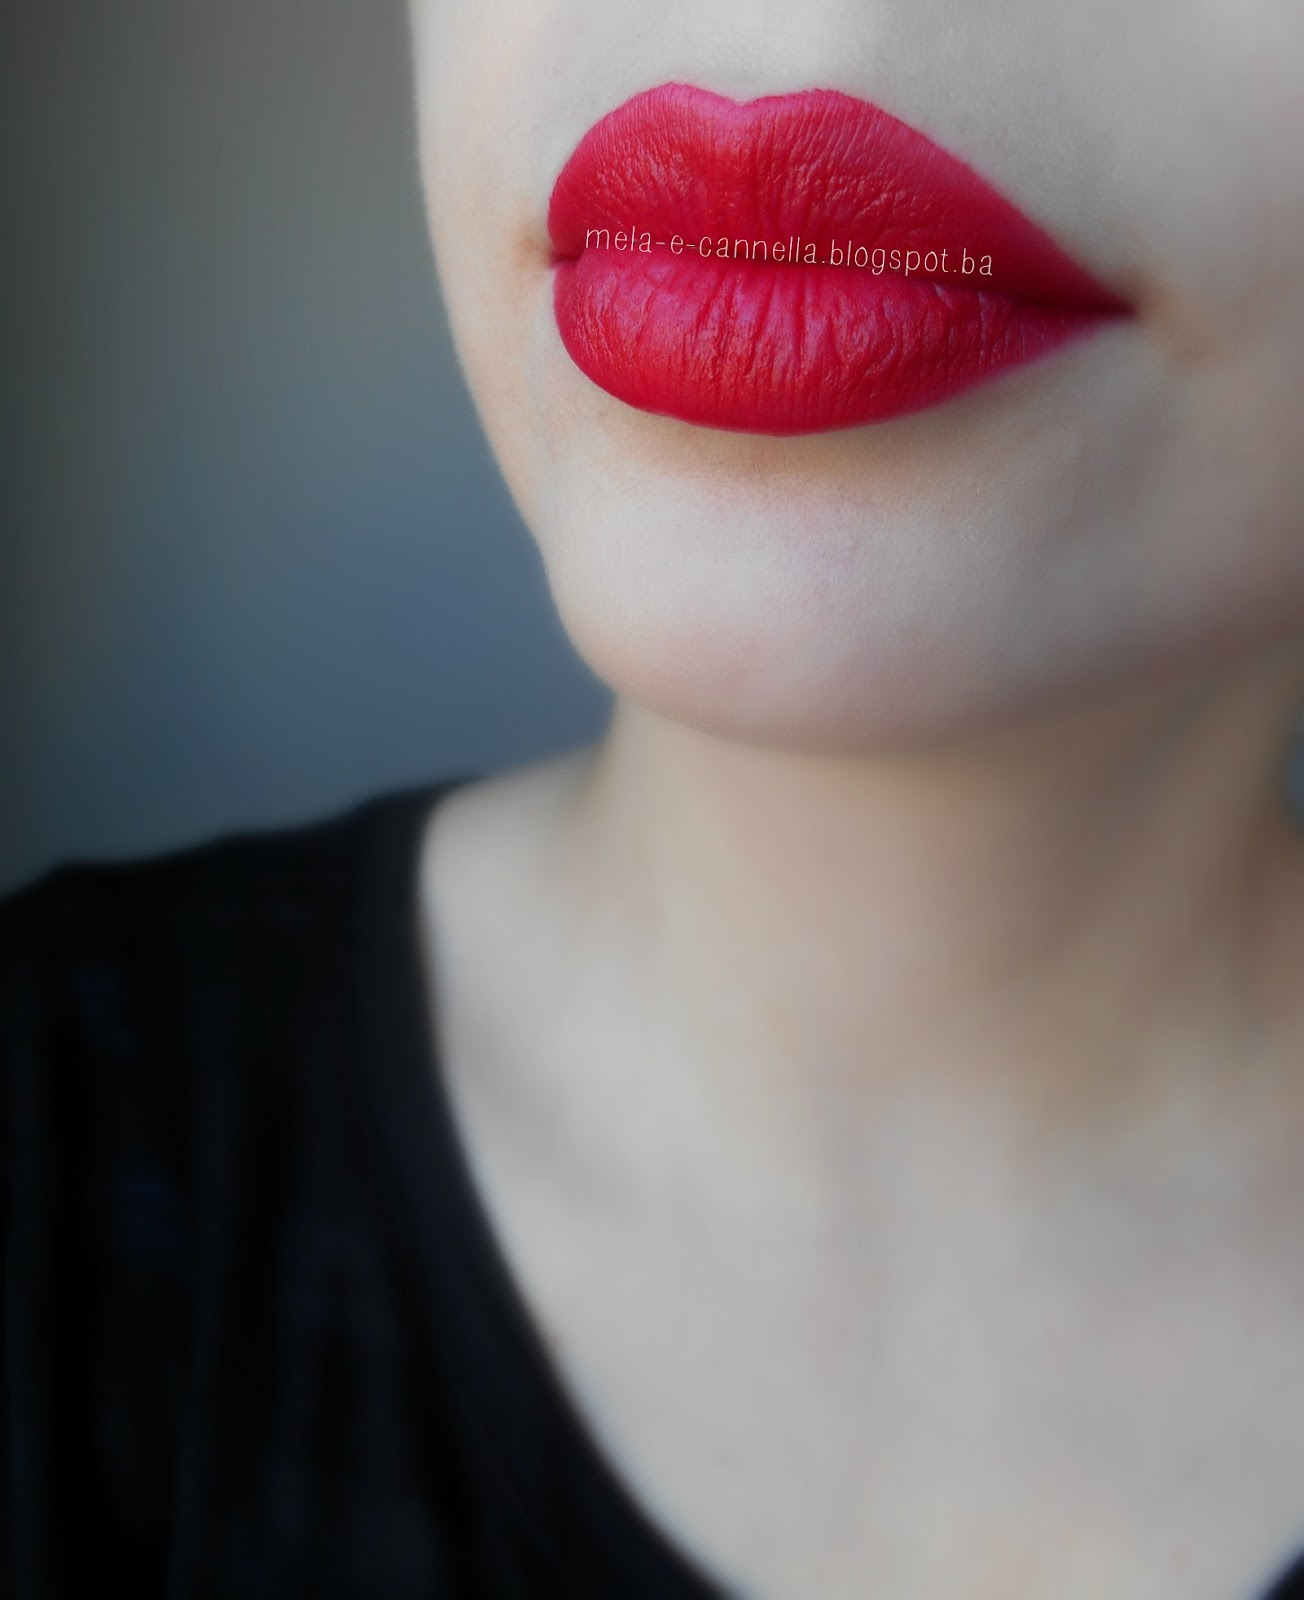 Image Result For What Lipstick Color